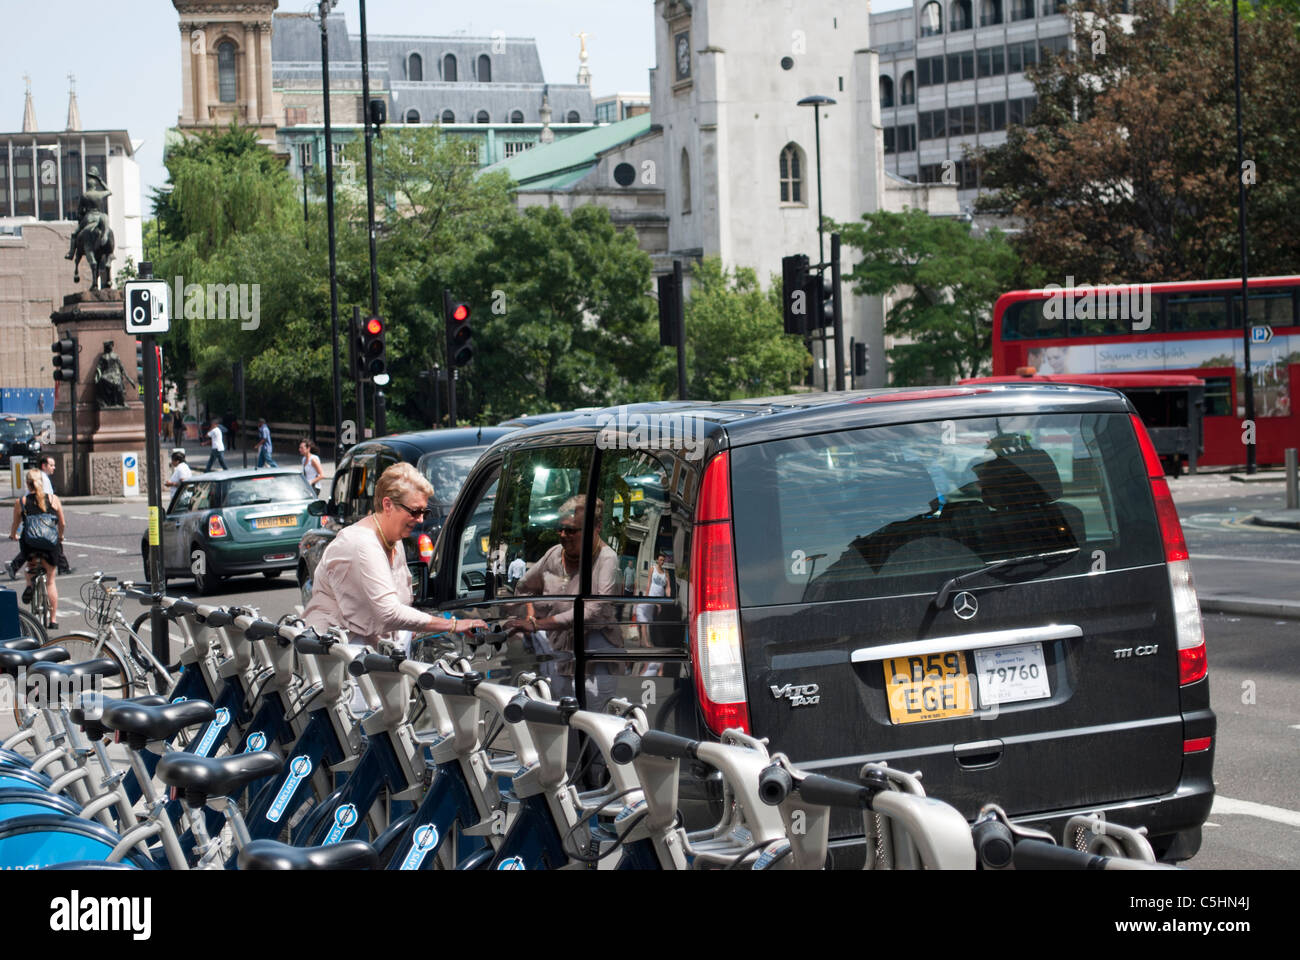 Person getting into a taxi next to a rack of Barclays Bank Cycle Hire bicycles at a docking station in the City - Stock Image